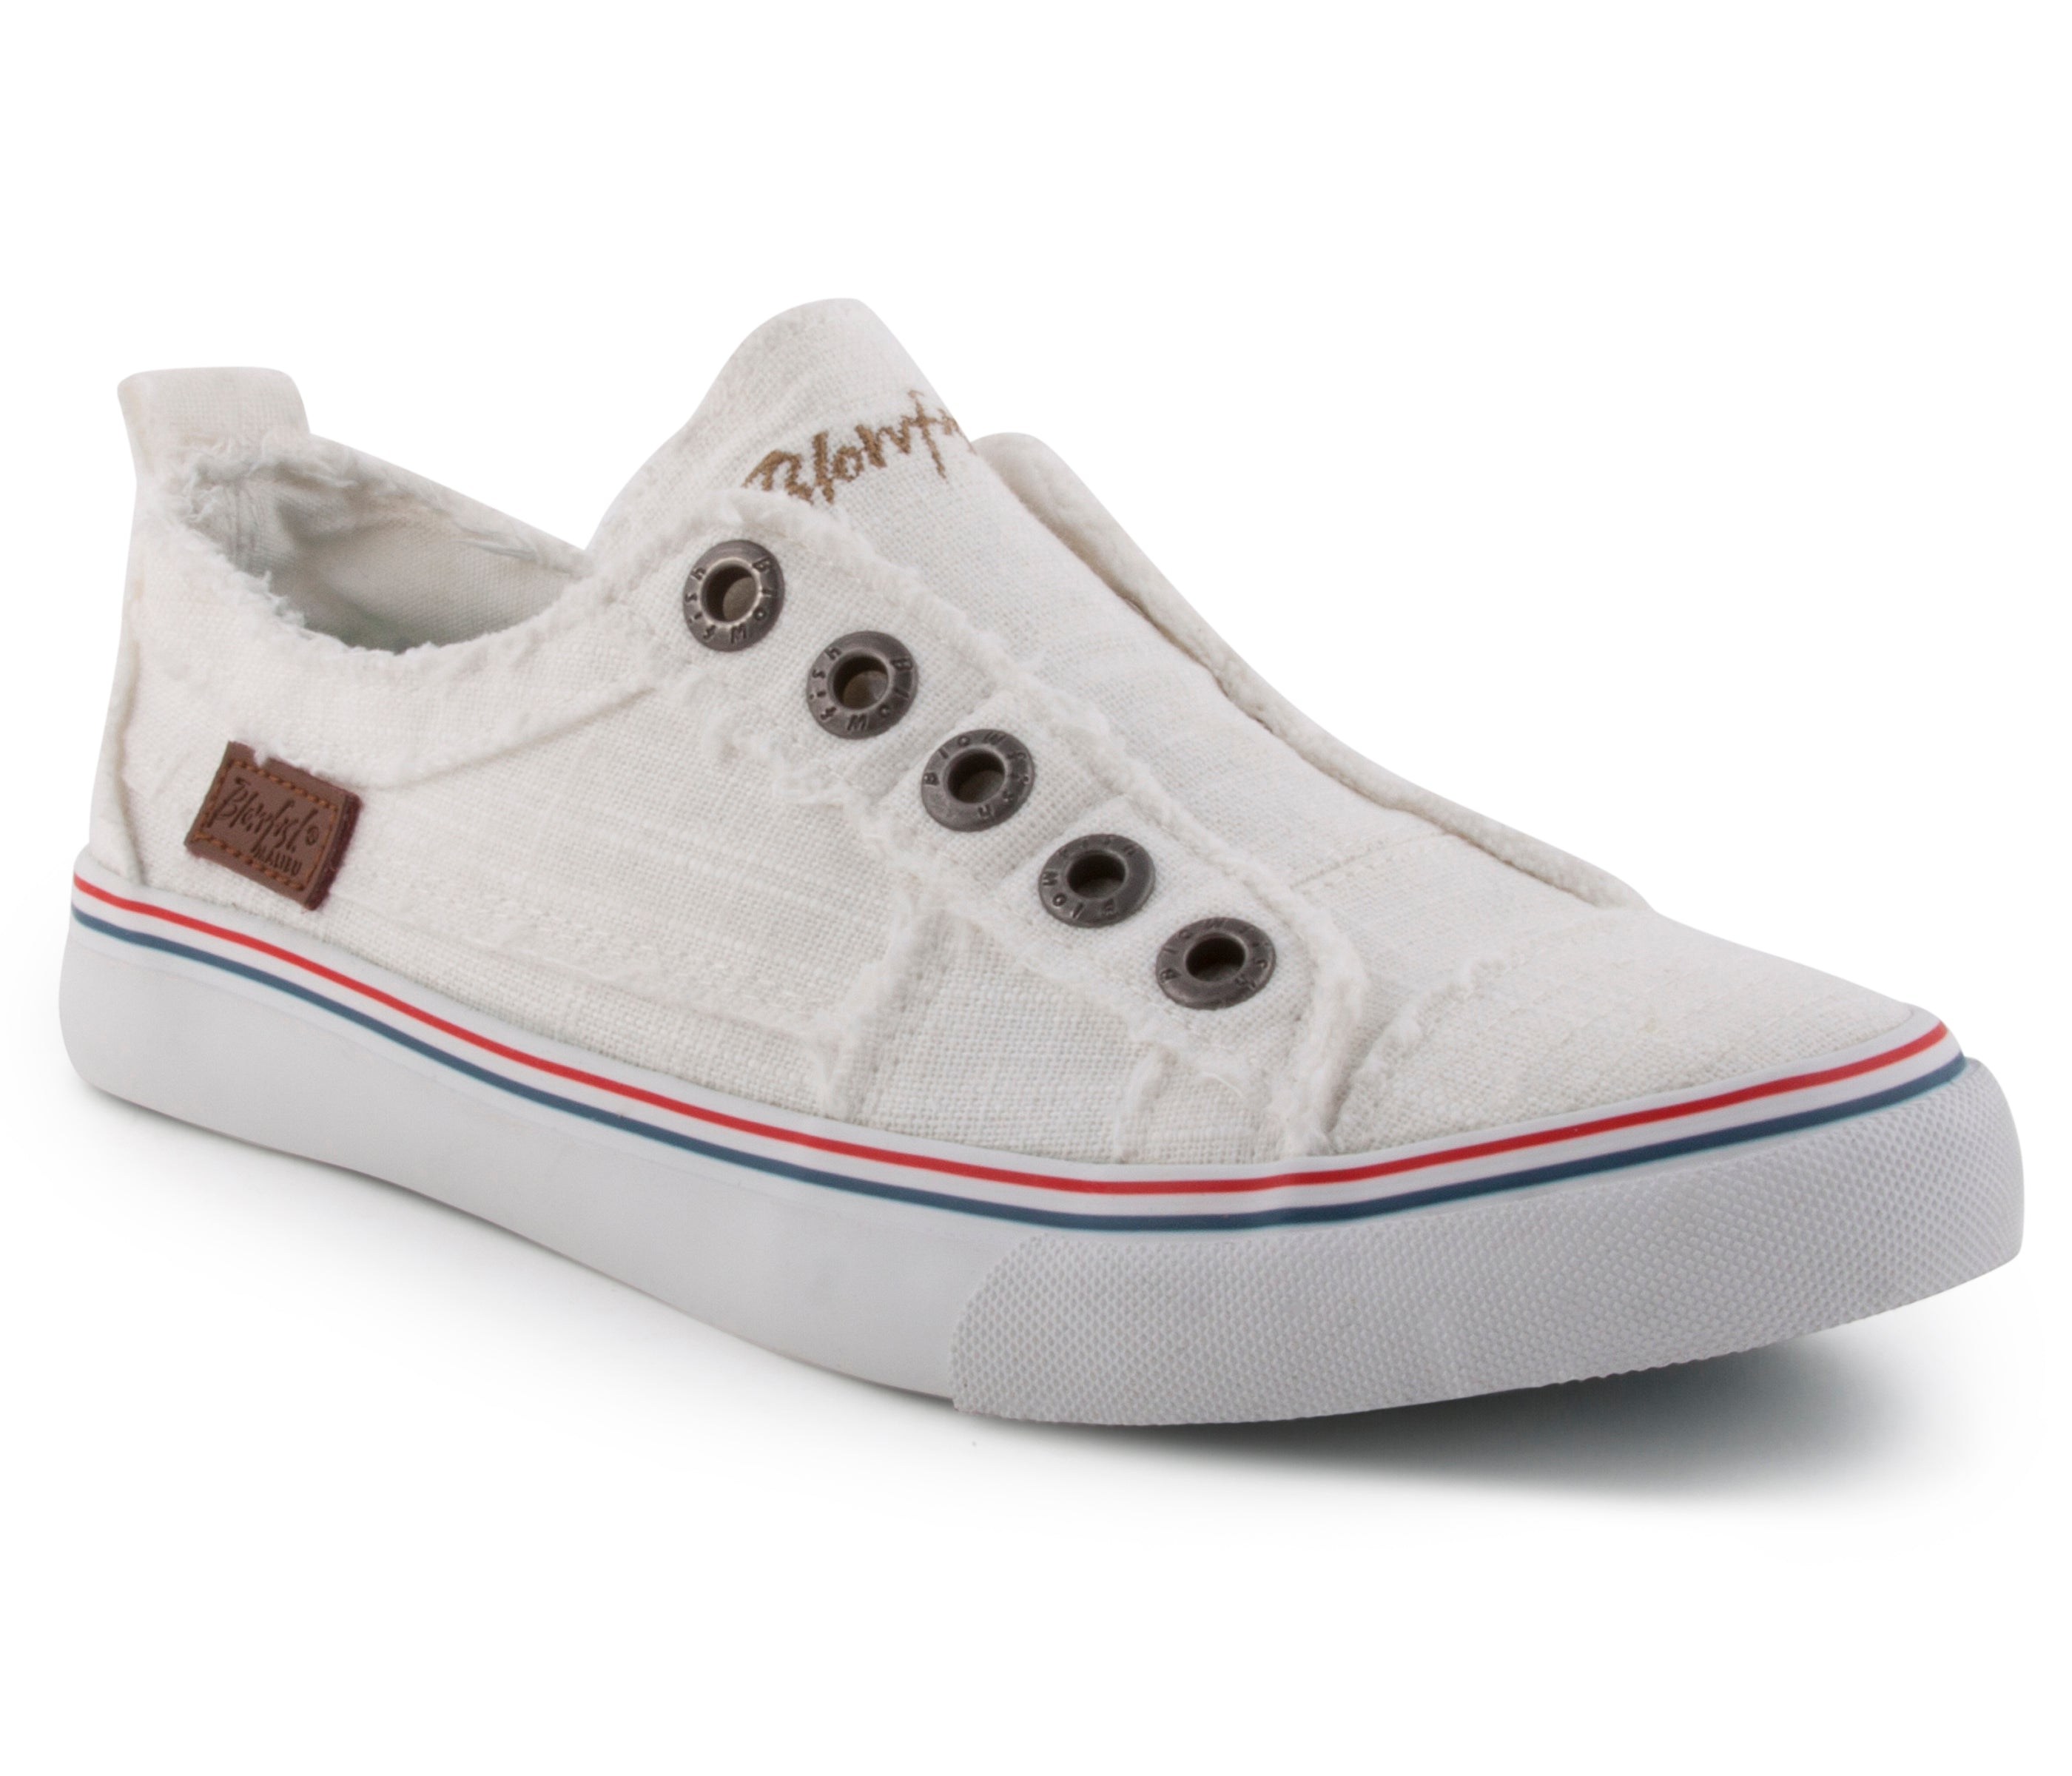 'Blowfish' Malibu Play ZS-0061 103 - Slip-on Shoe - White Color Washed Cozumel